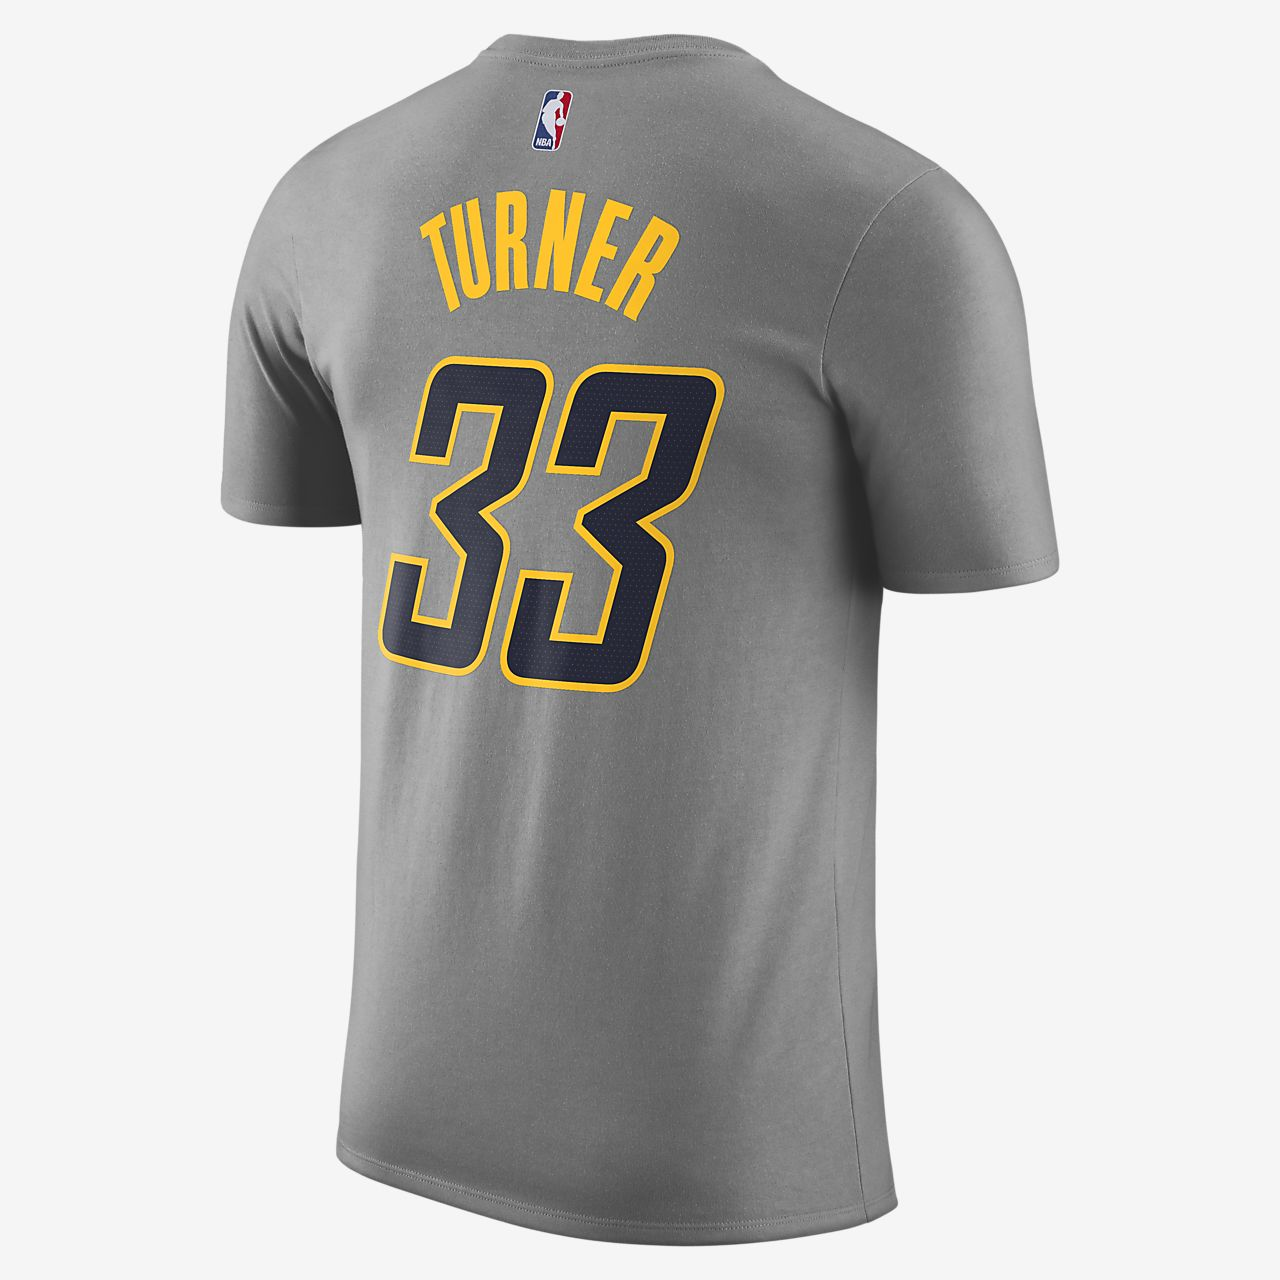 27ddafb466a8 ... Myles Turner Indiana Pacers City Edition Nike Dri-FIT Men s NBA T-Shirt